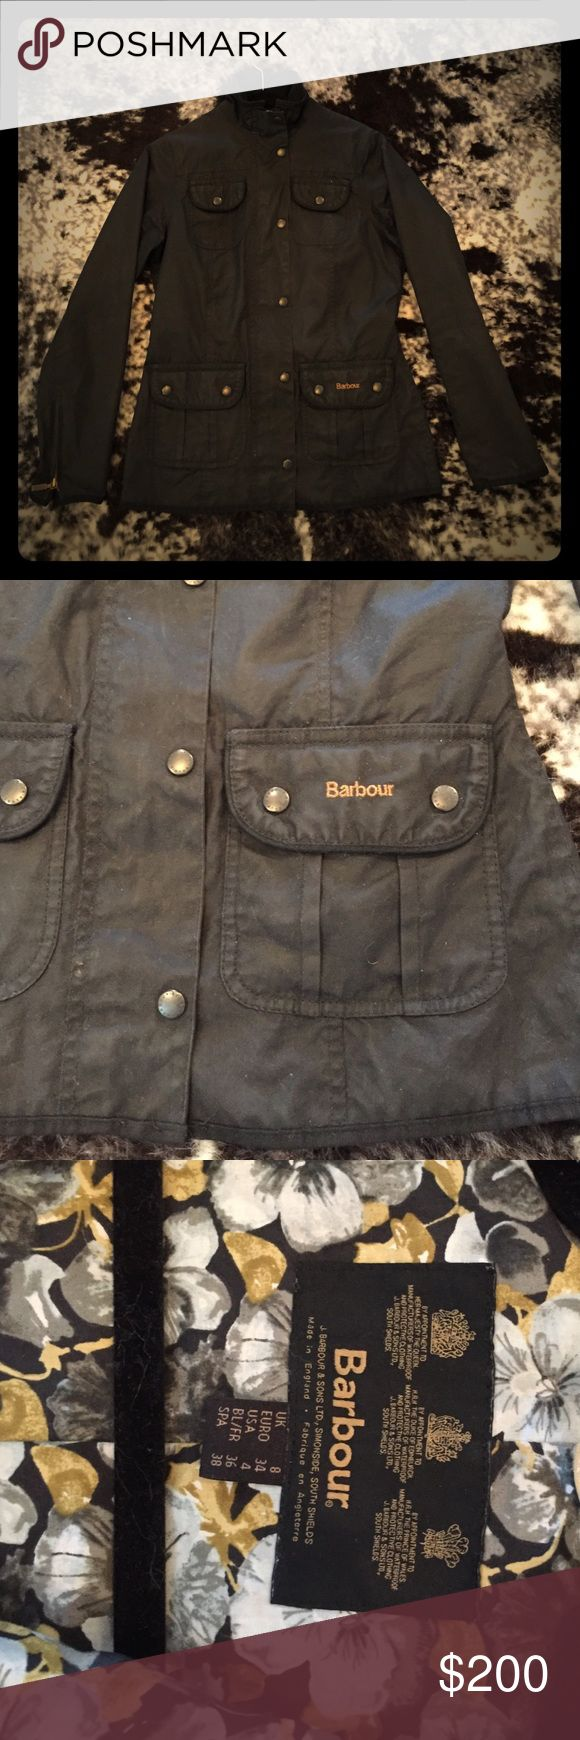 FLASH SALE 🔥 Barbour Classic Green Waxed Jacket Barbour Classic Green Waxed Jacket. This is a small 4! Runs like a small 2-4. Just a little too small for me. Make offers! Bought from another posher. Timeless. Nordstrom carries this brand. Cotton jacket. FINAL PRICE Barbour Jackets & Coats Utility Jackets